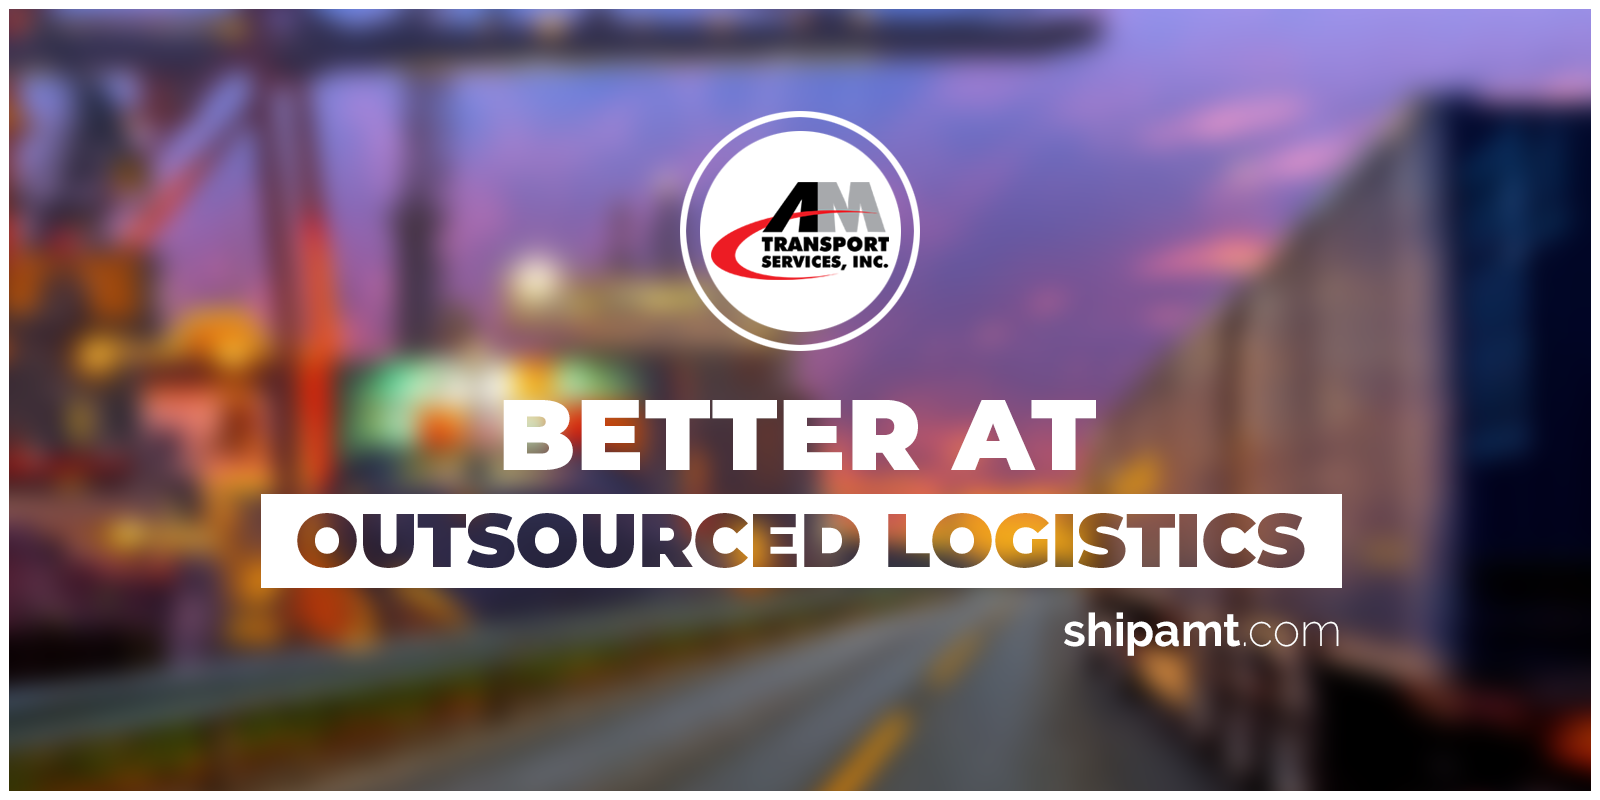 Hazy picture of truck on highway with Better At Outsourced Logistics